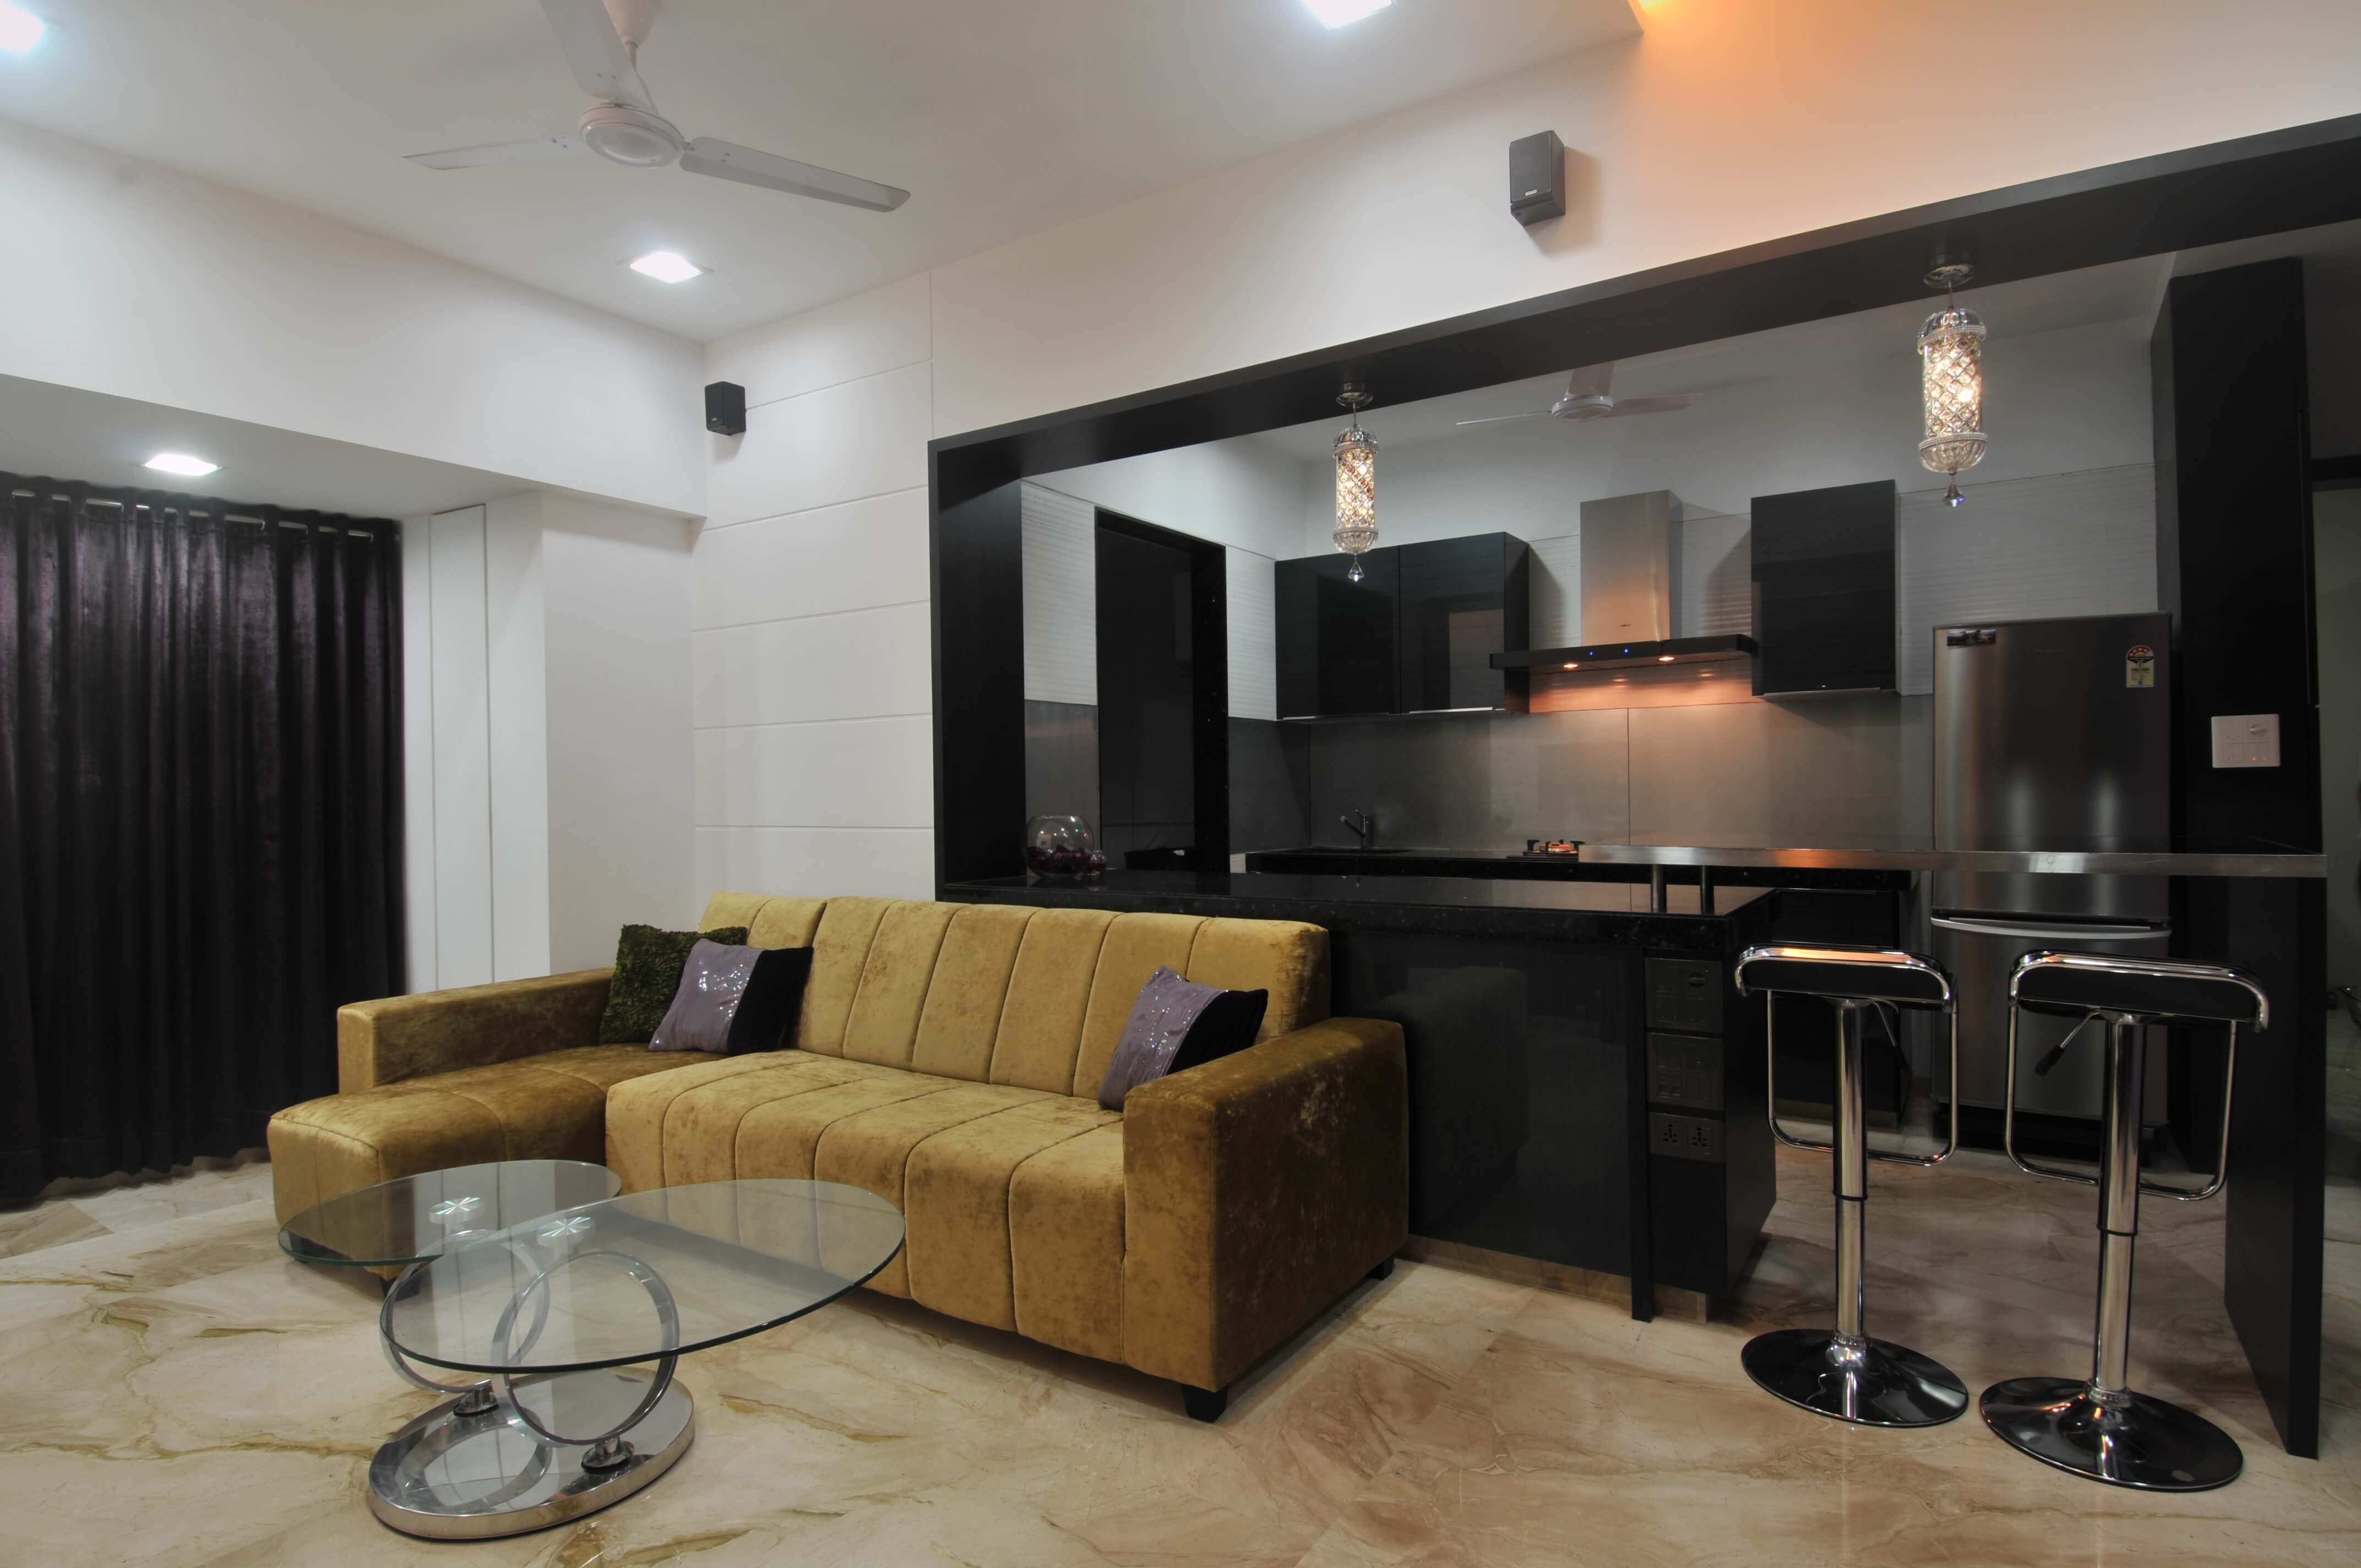 Mumbai Modular Kitchen Site02 Luxus India